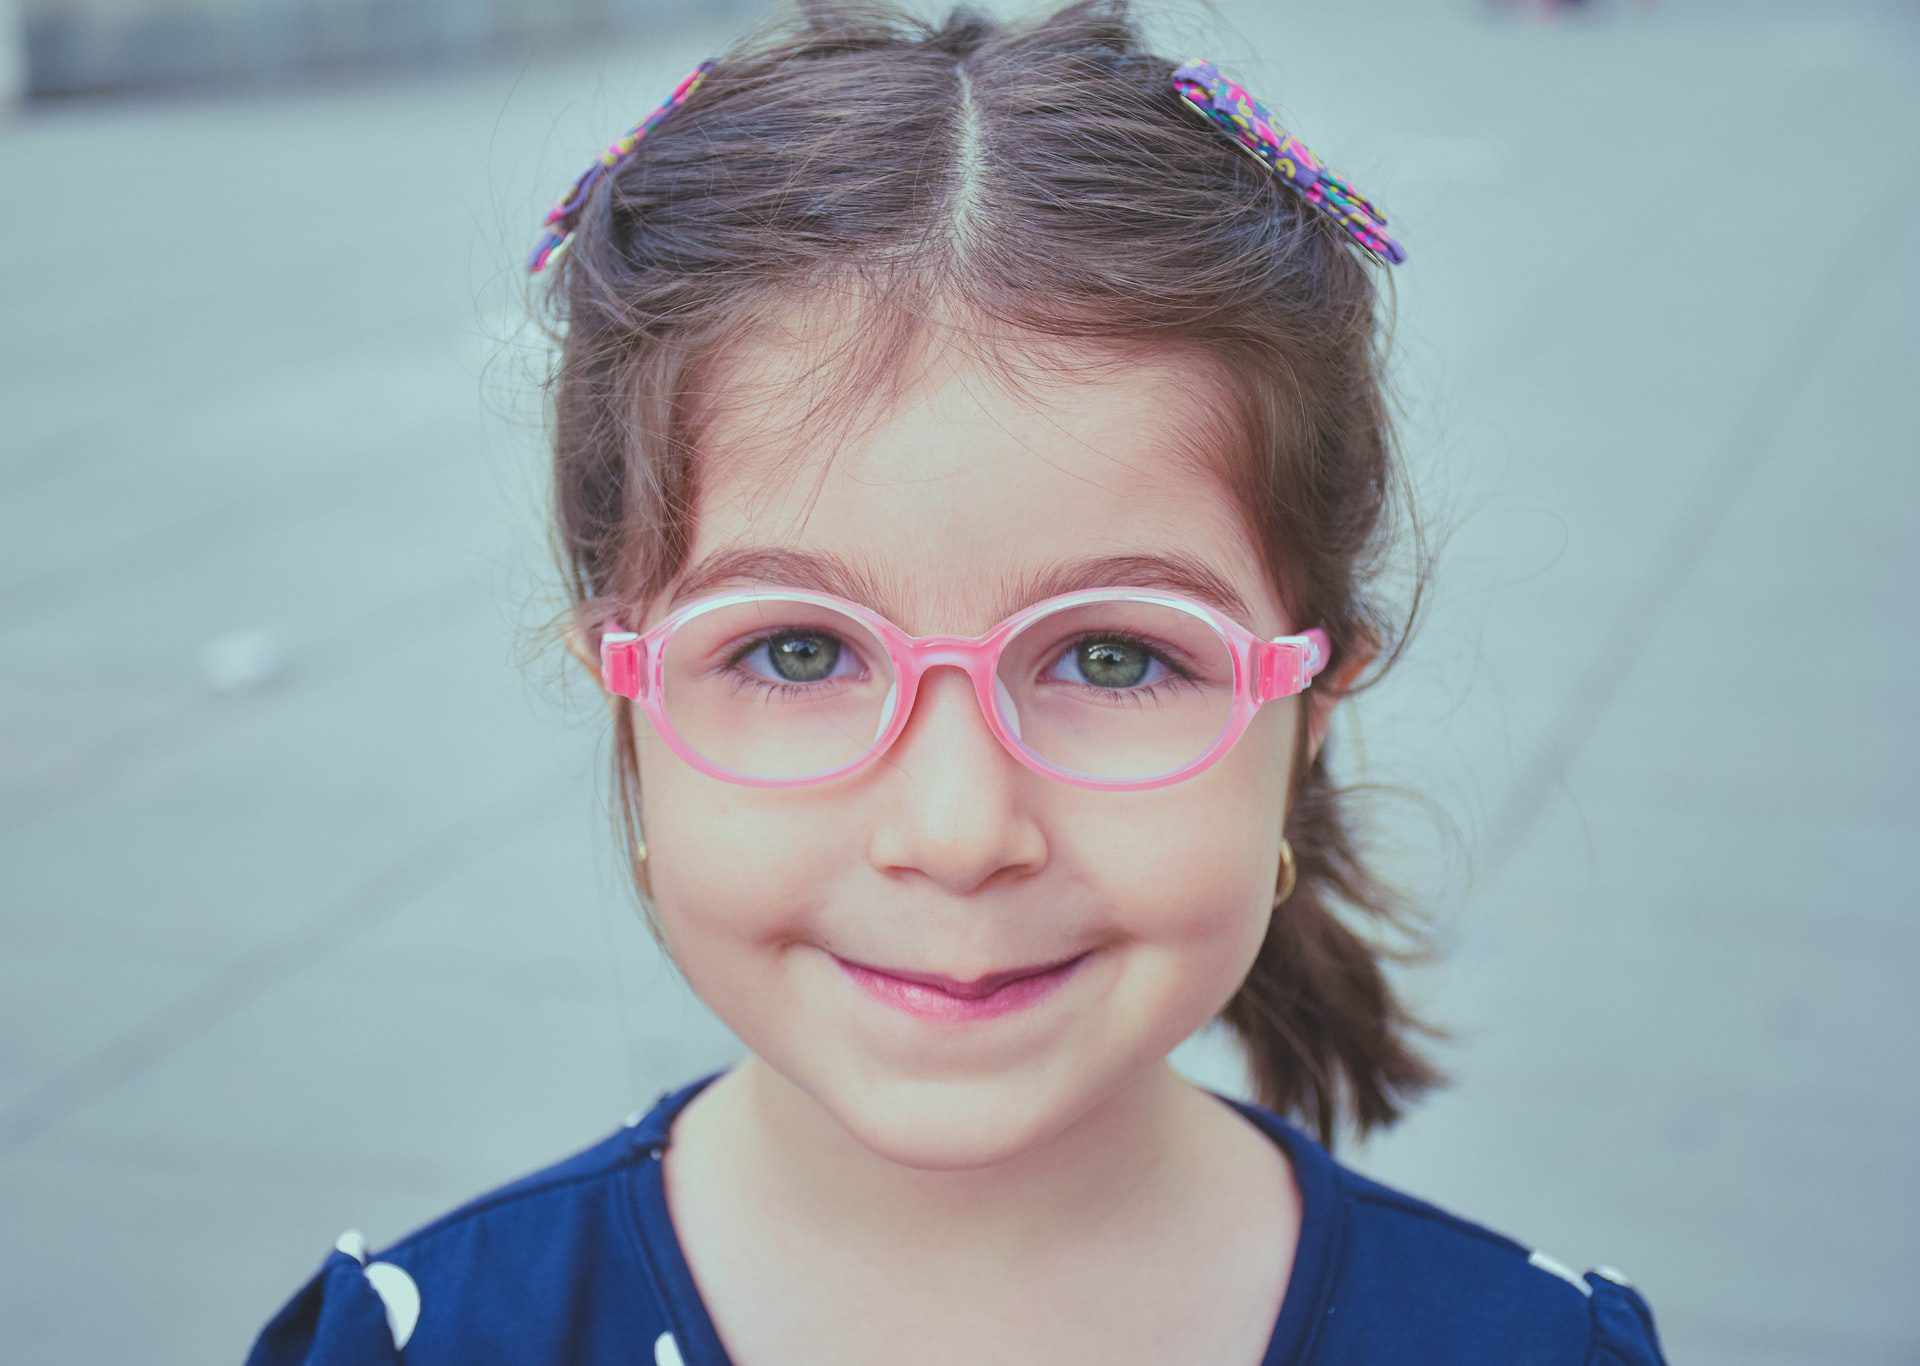 You are currently viewing How To Protect a Child's Vision